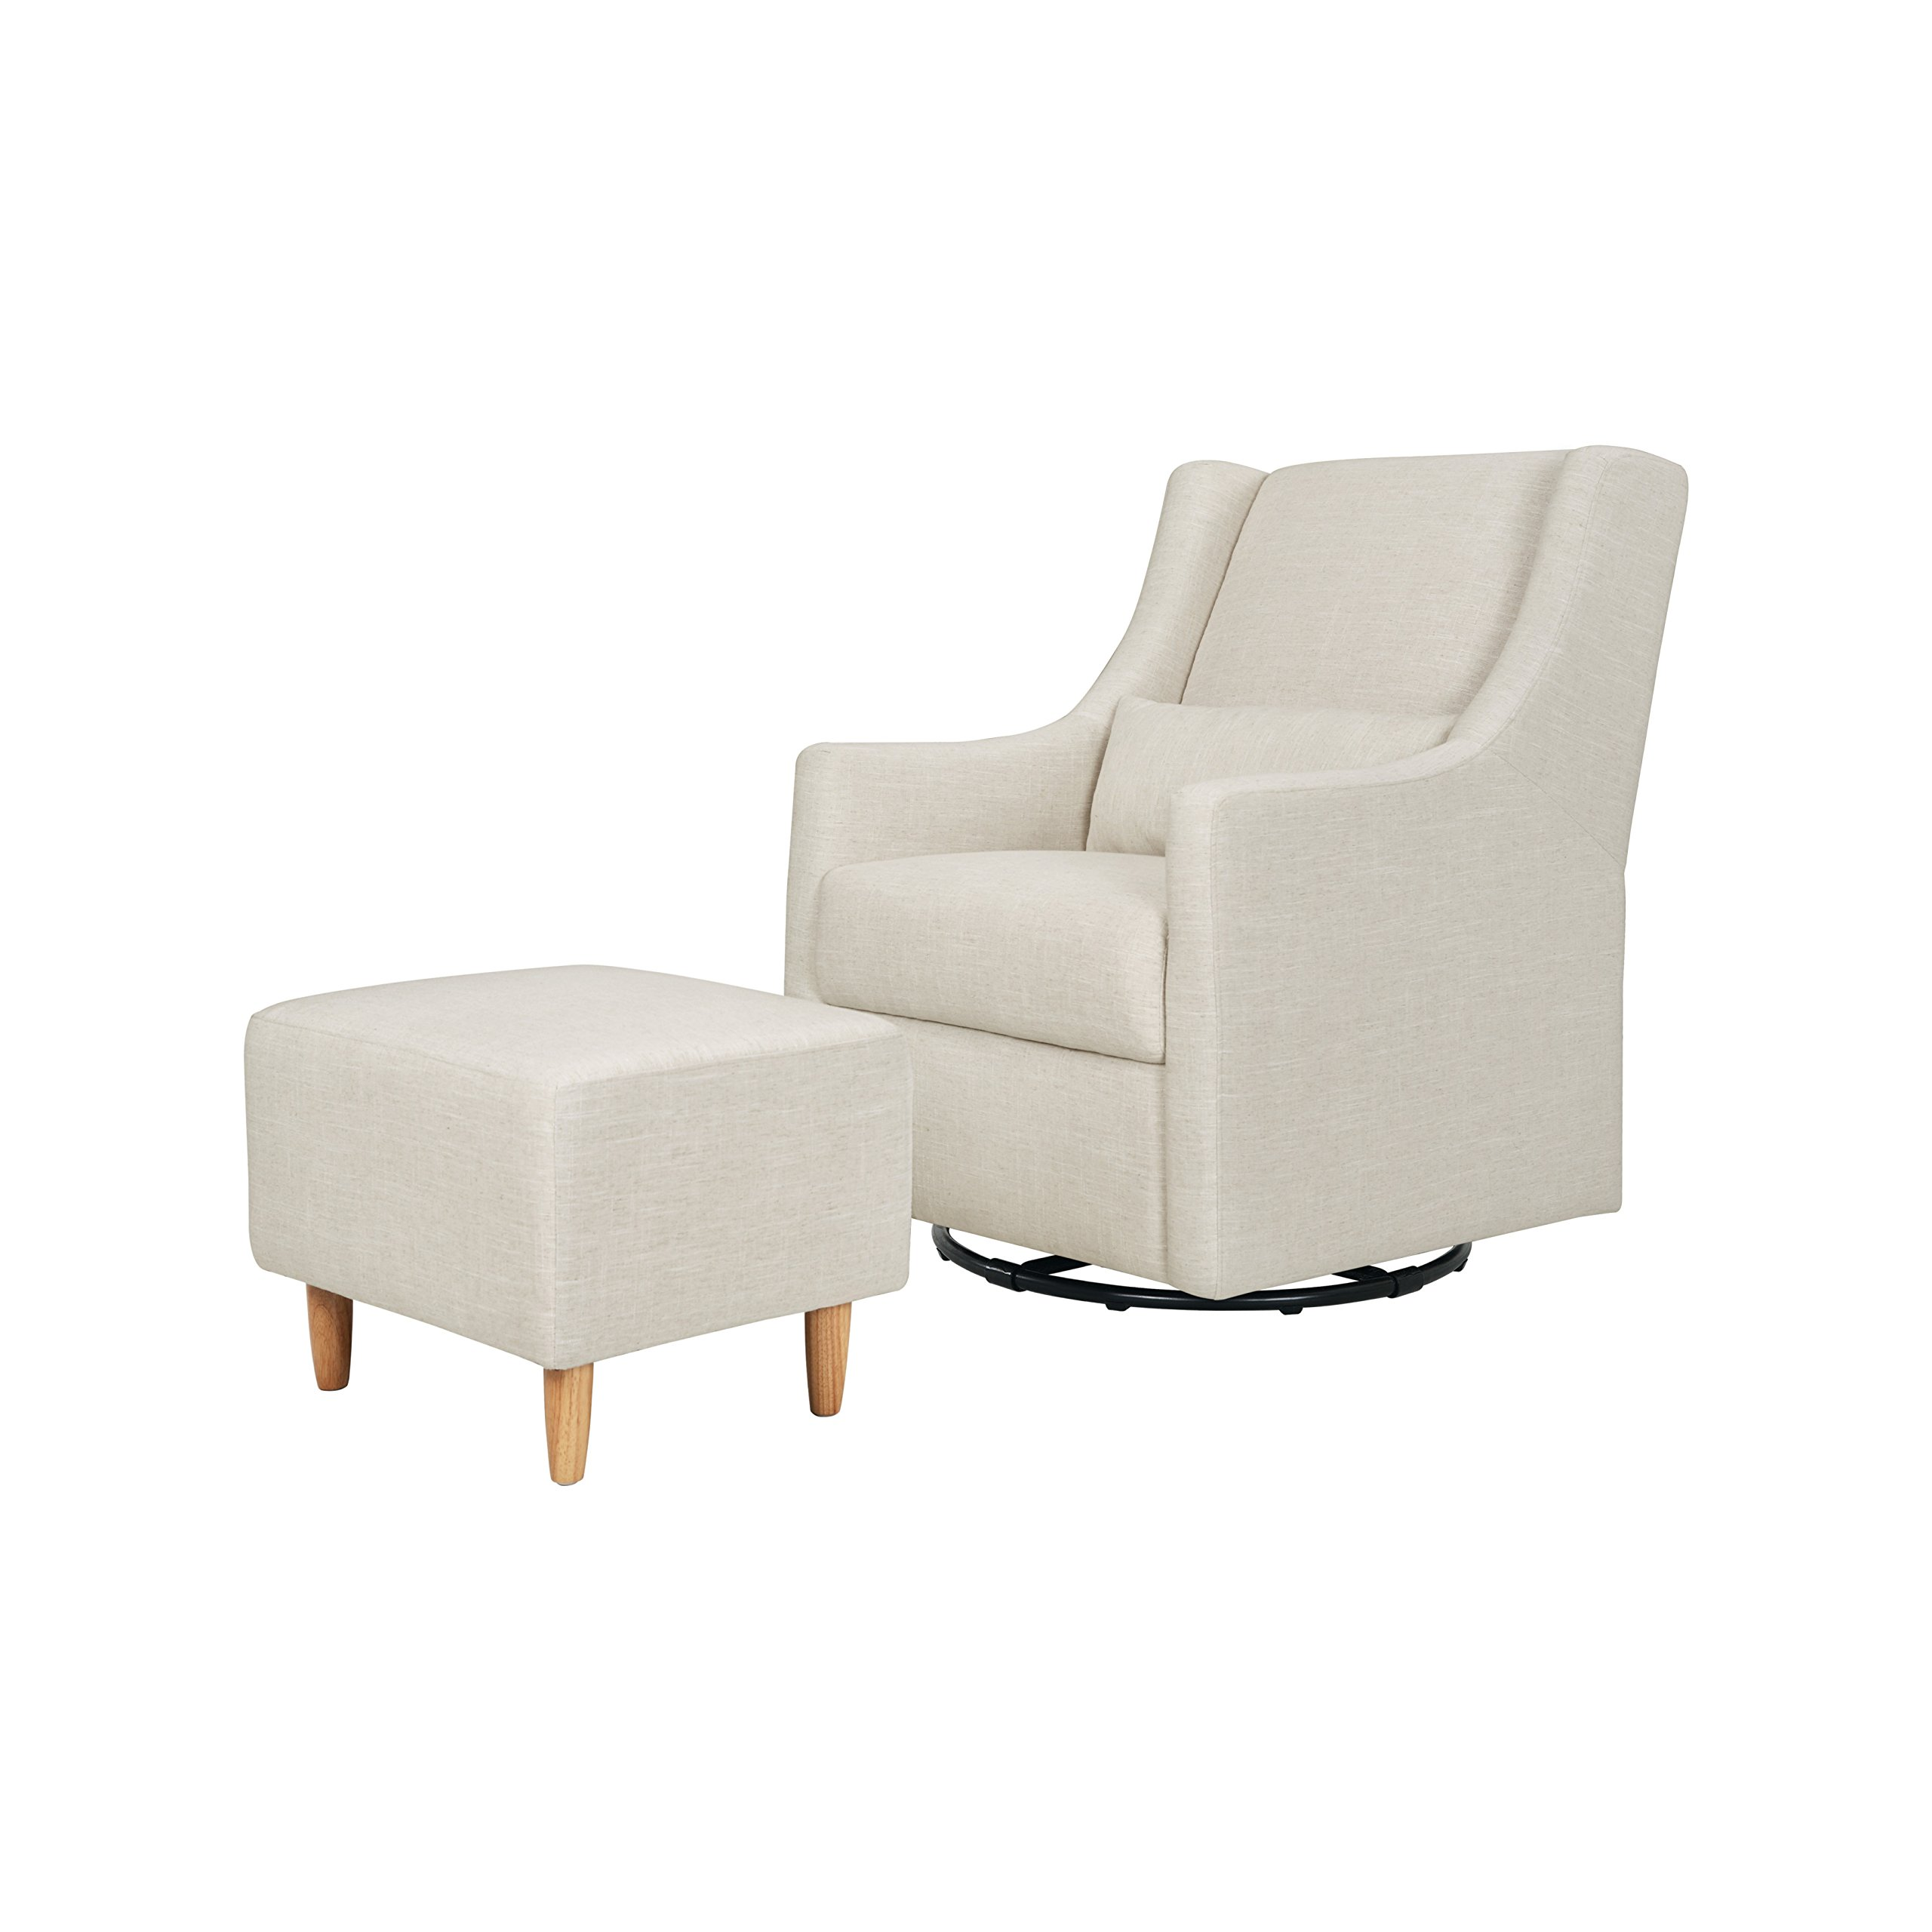 Babyletto Toco Swivel Glider and Stationary Ottoman, White Linen